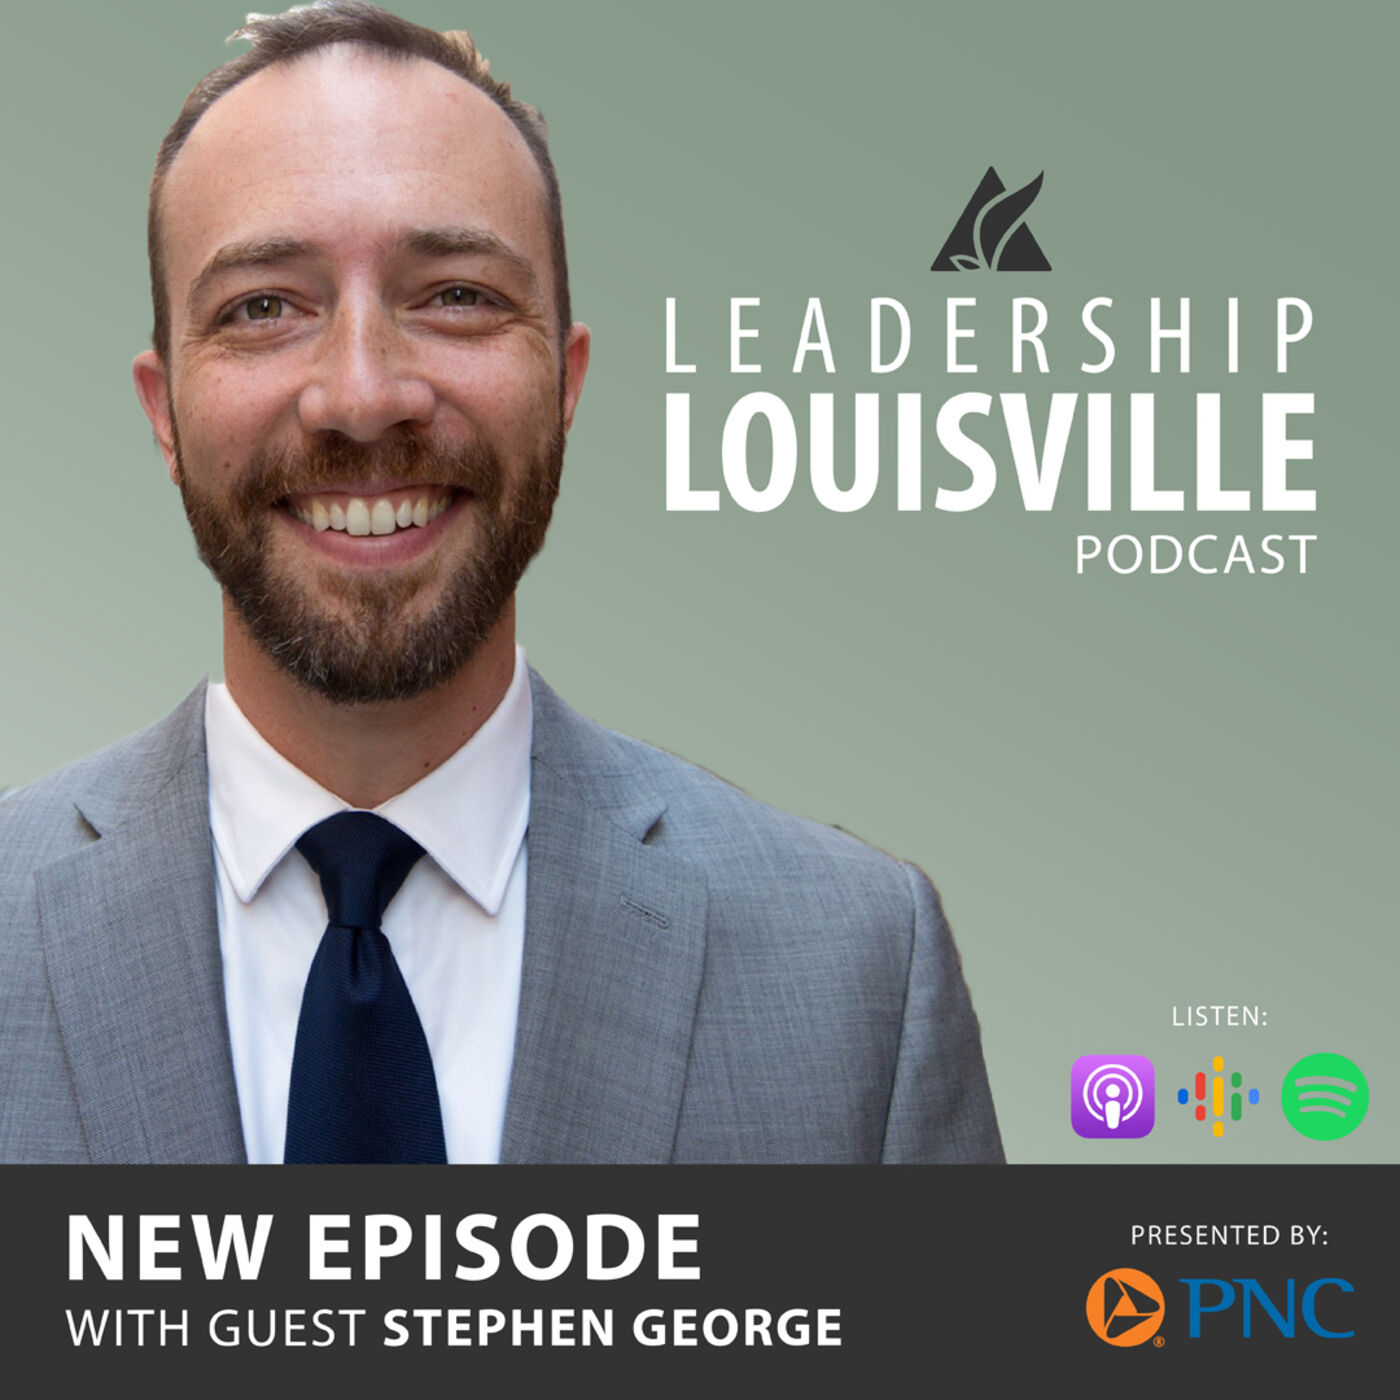 Expansion during times of uncertainty, with Stephen George, President & GM of Louisville Public Media